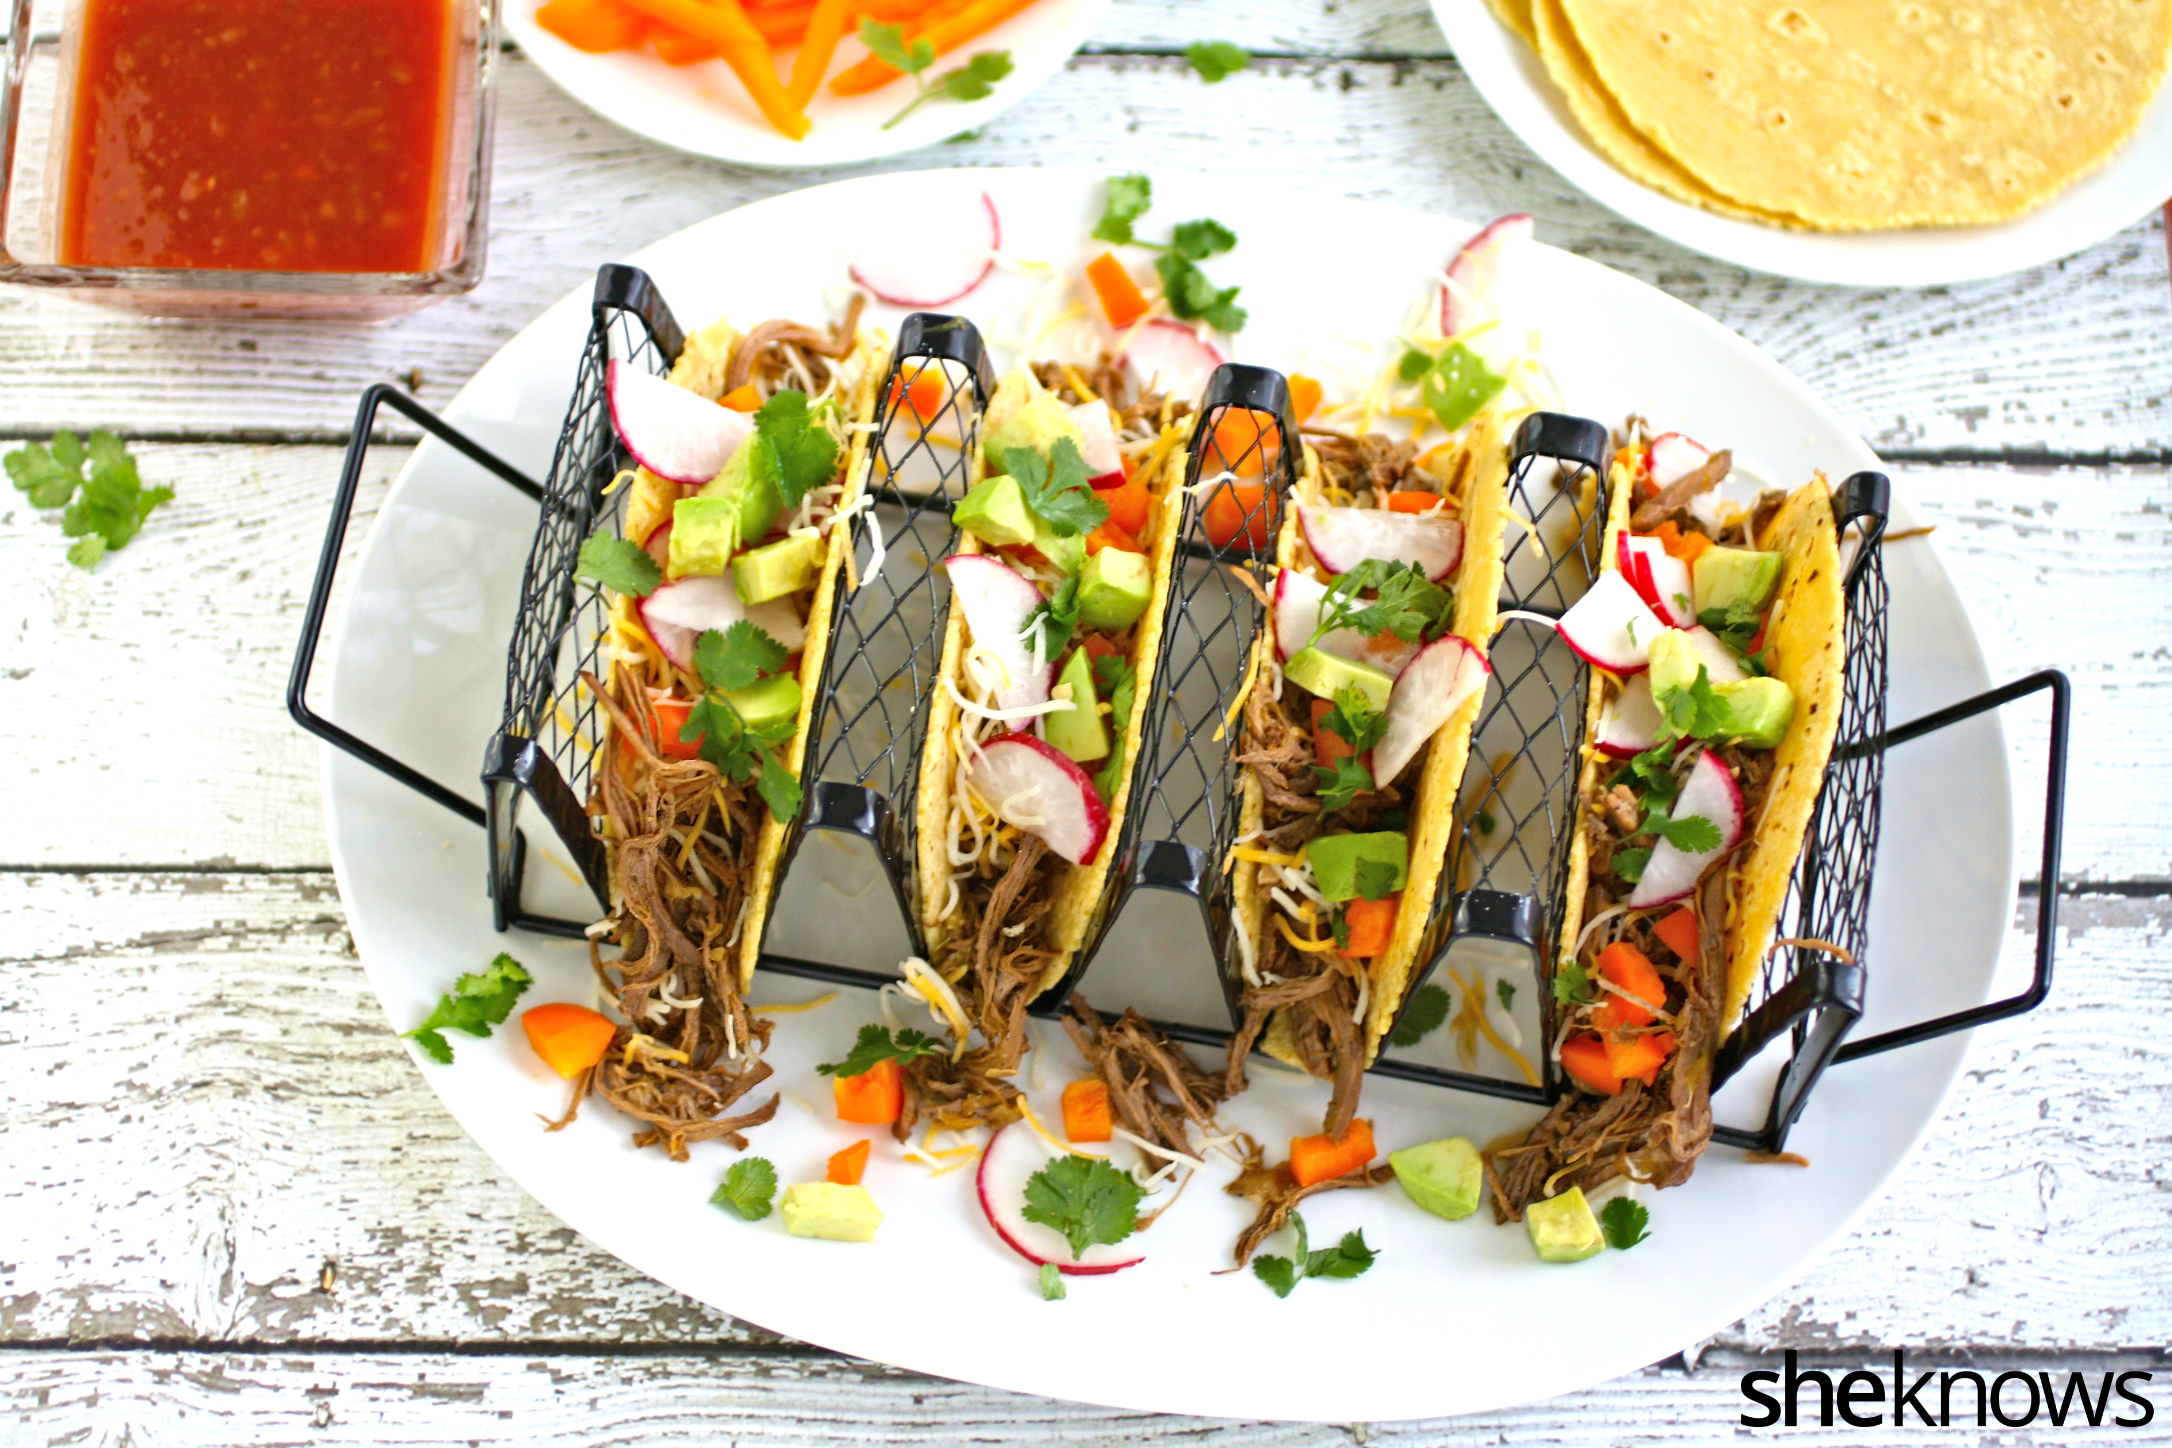 So many flavors and colors with these slow cooker Sunday beer-braised beef tacos!